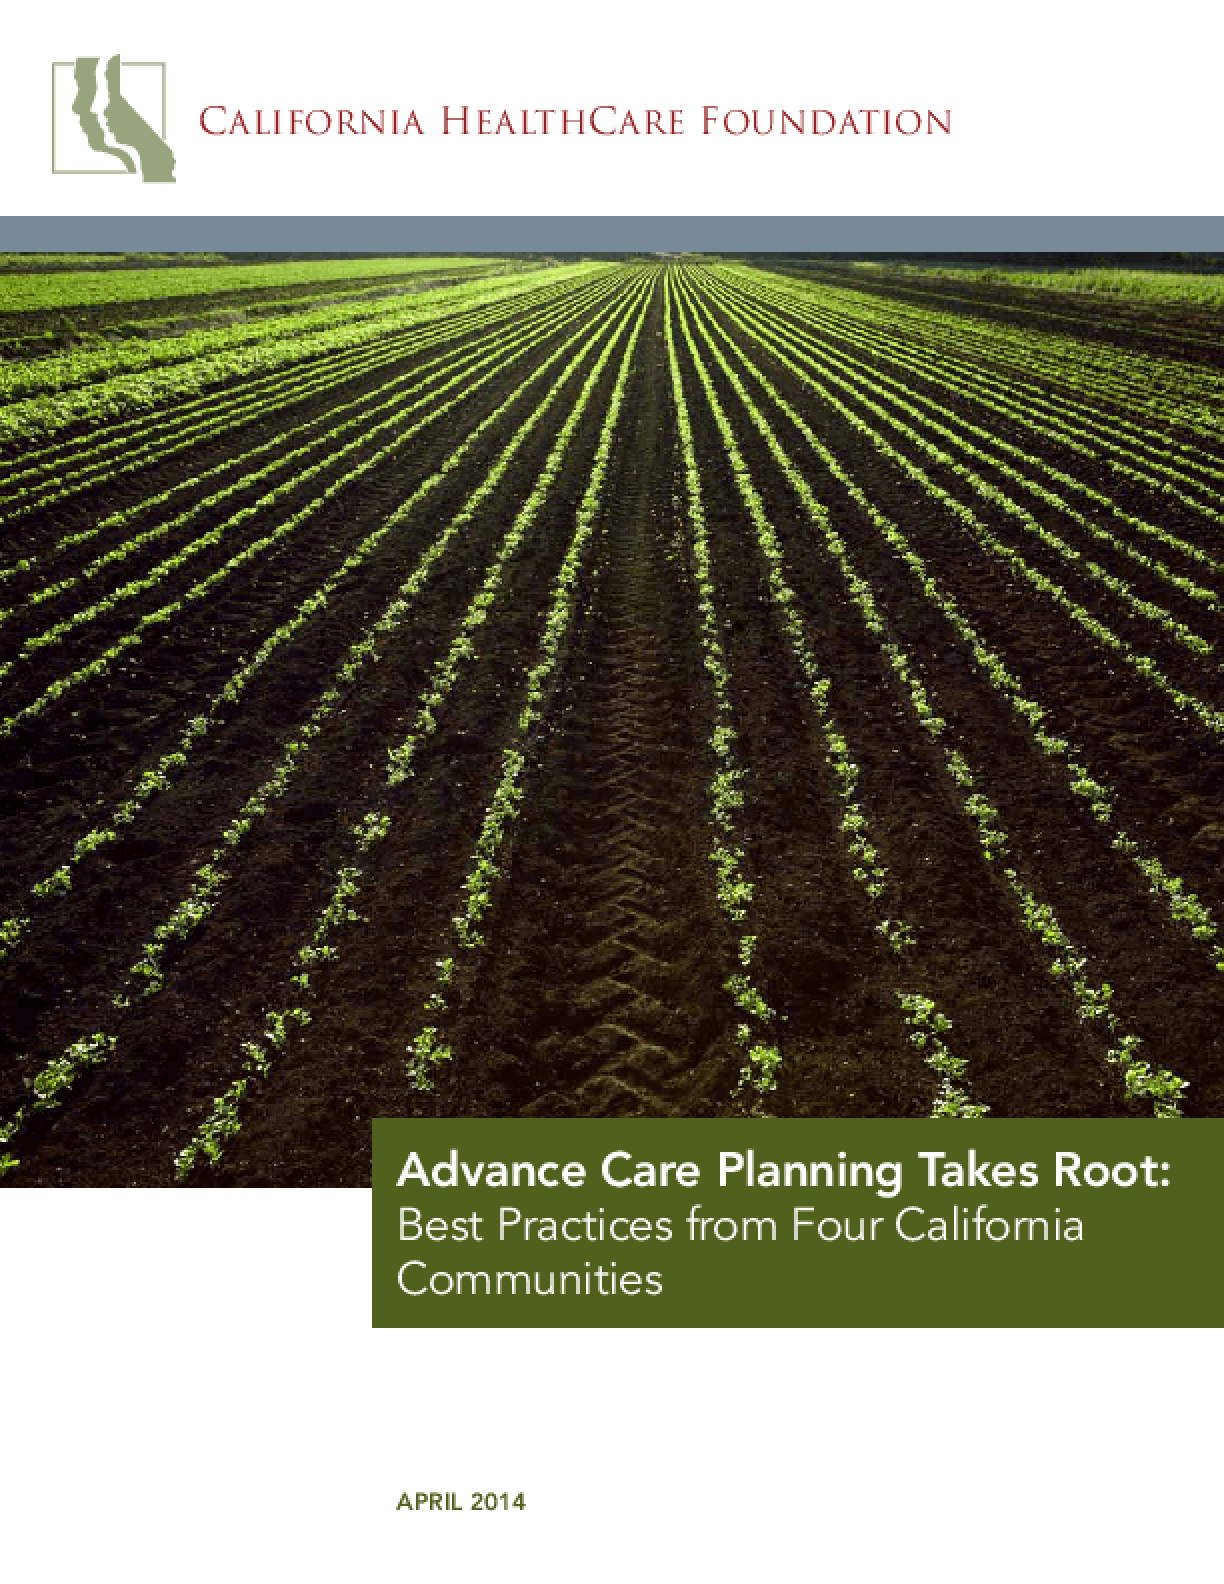 Advance Care Planning Takes Root: Best Practices from Four California Communities